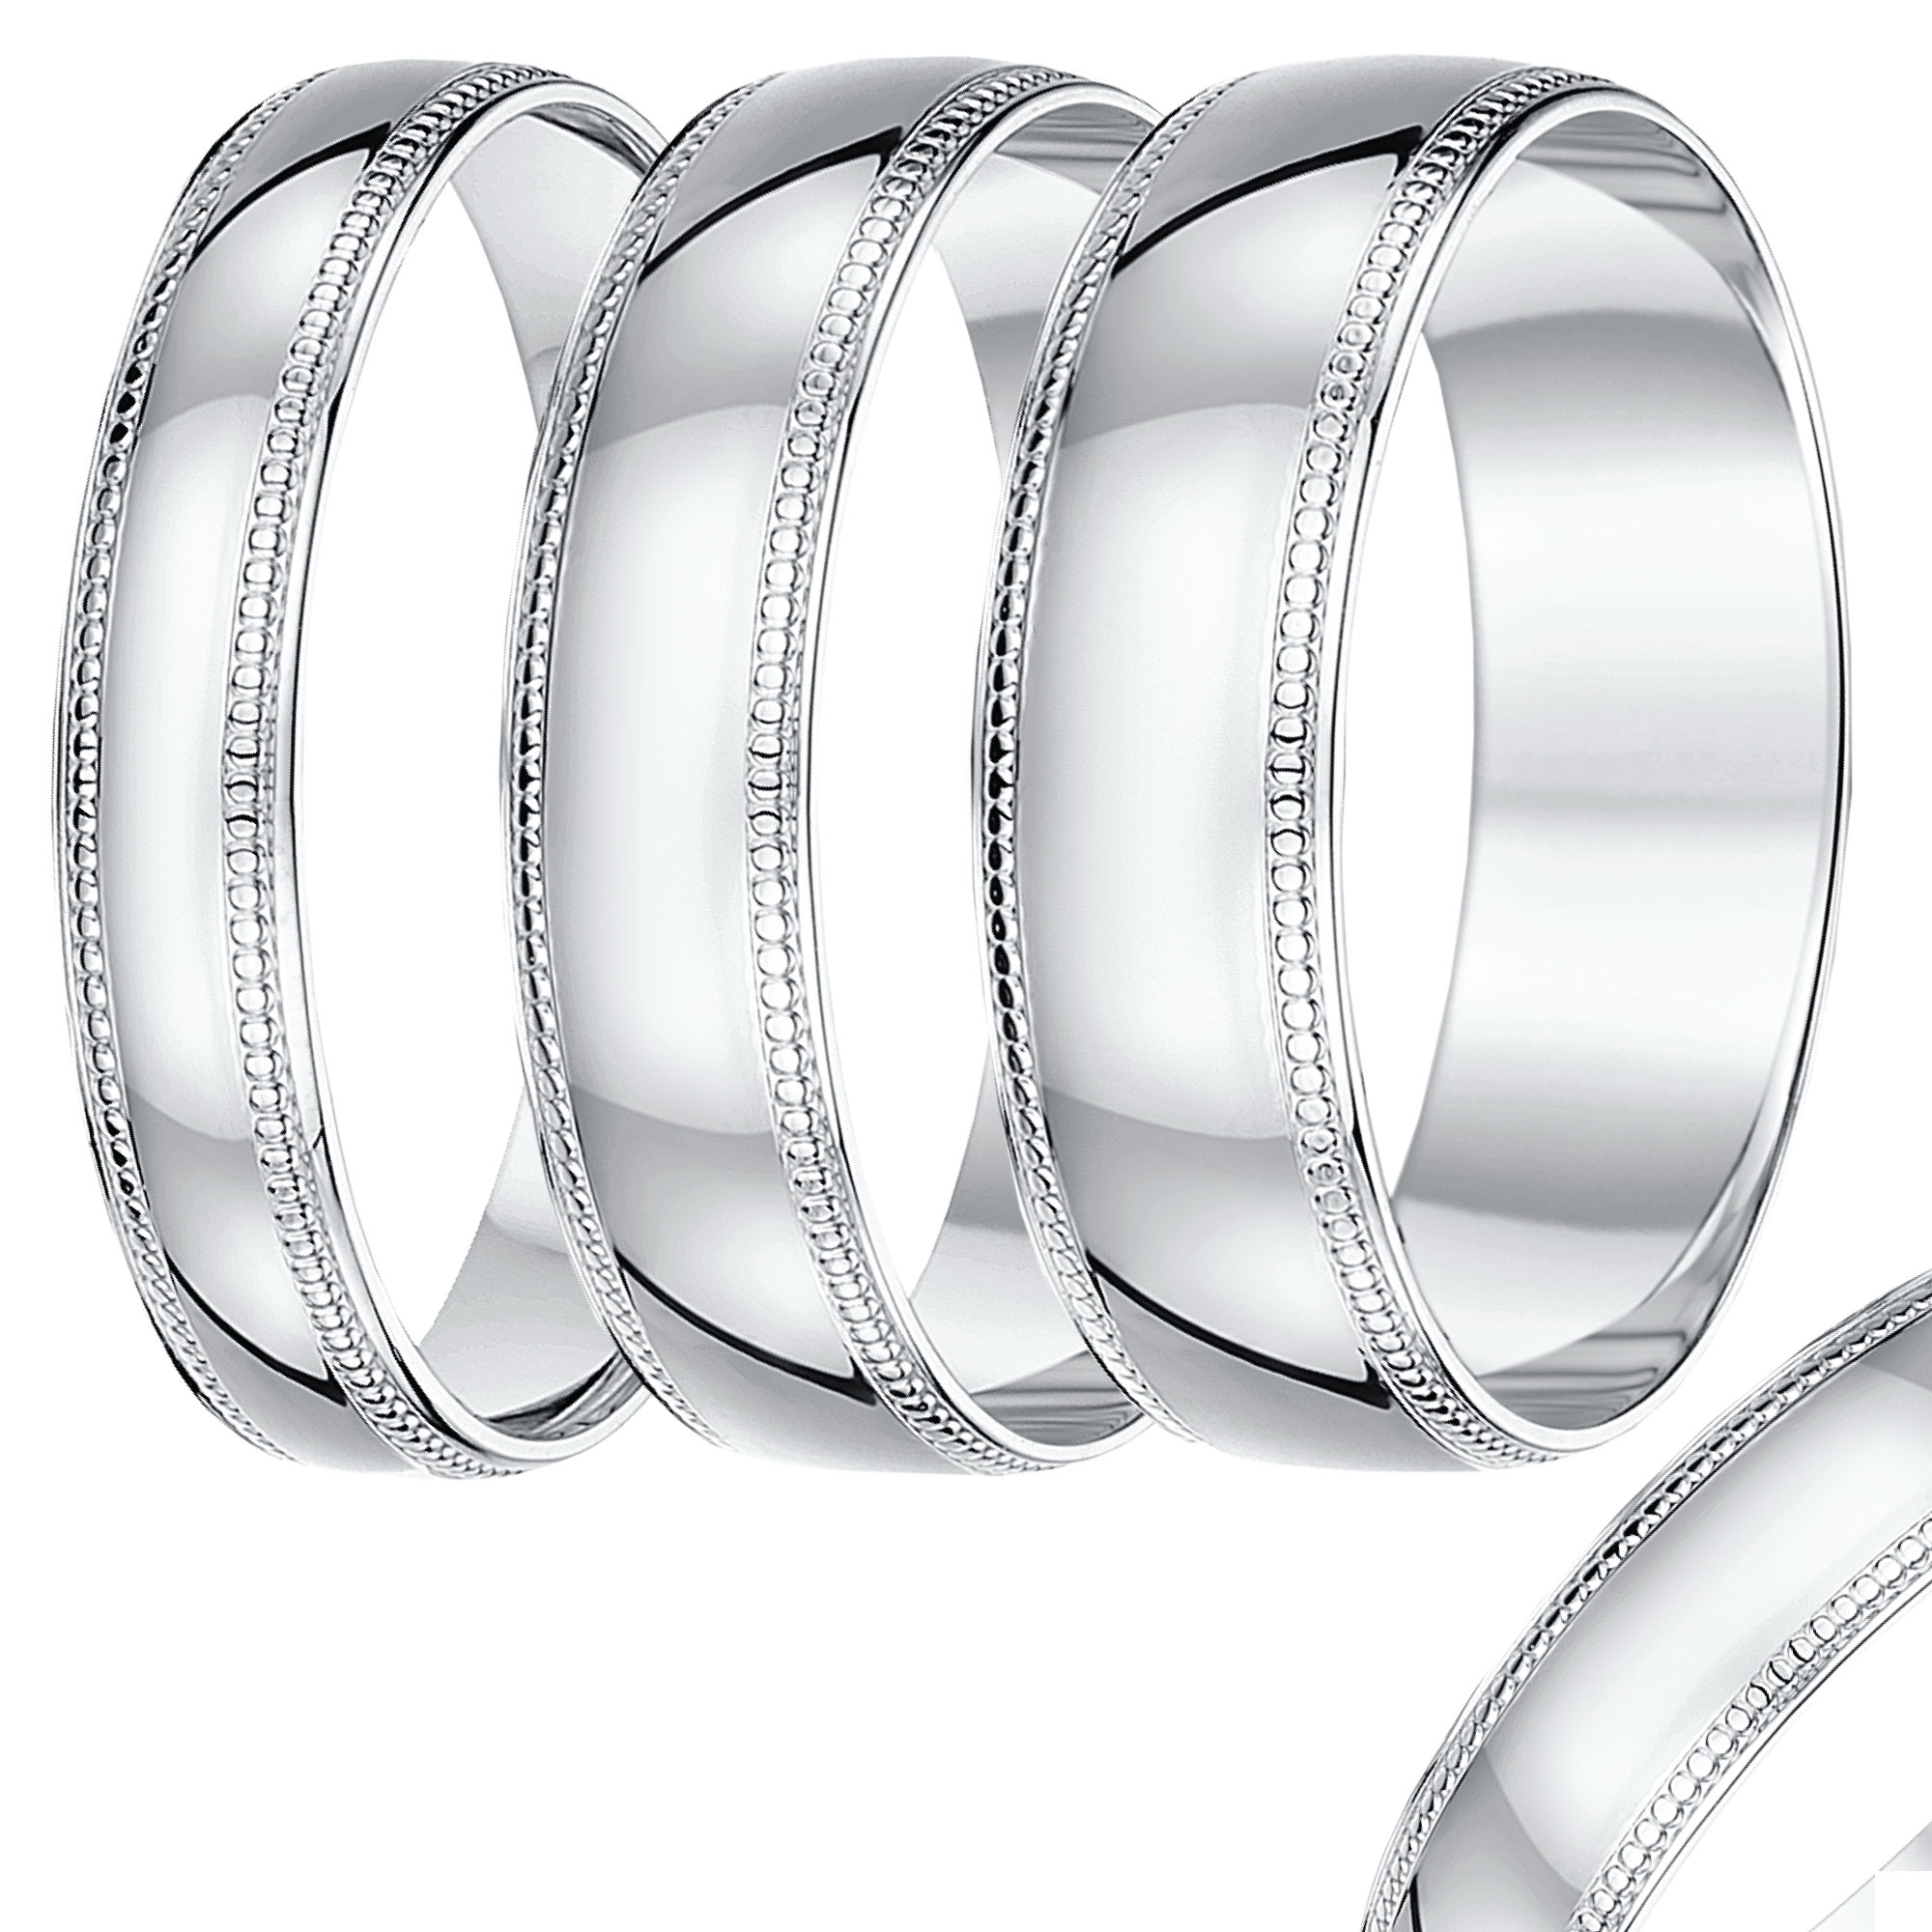 4mm-8mm White Gold Milgrain Wedding Band